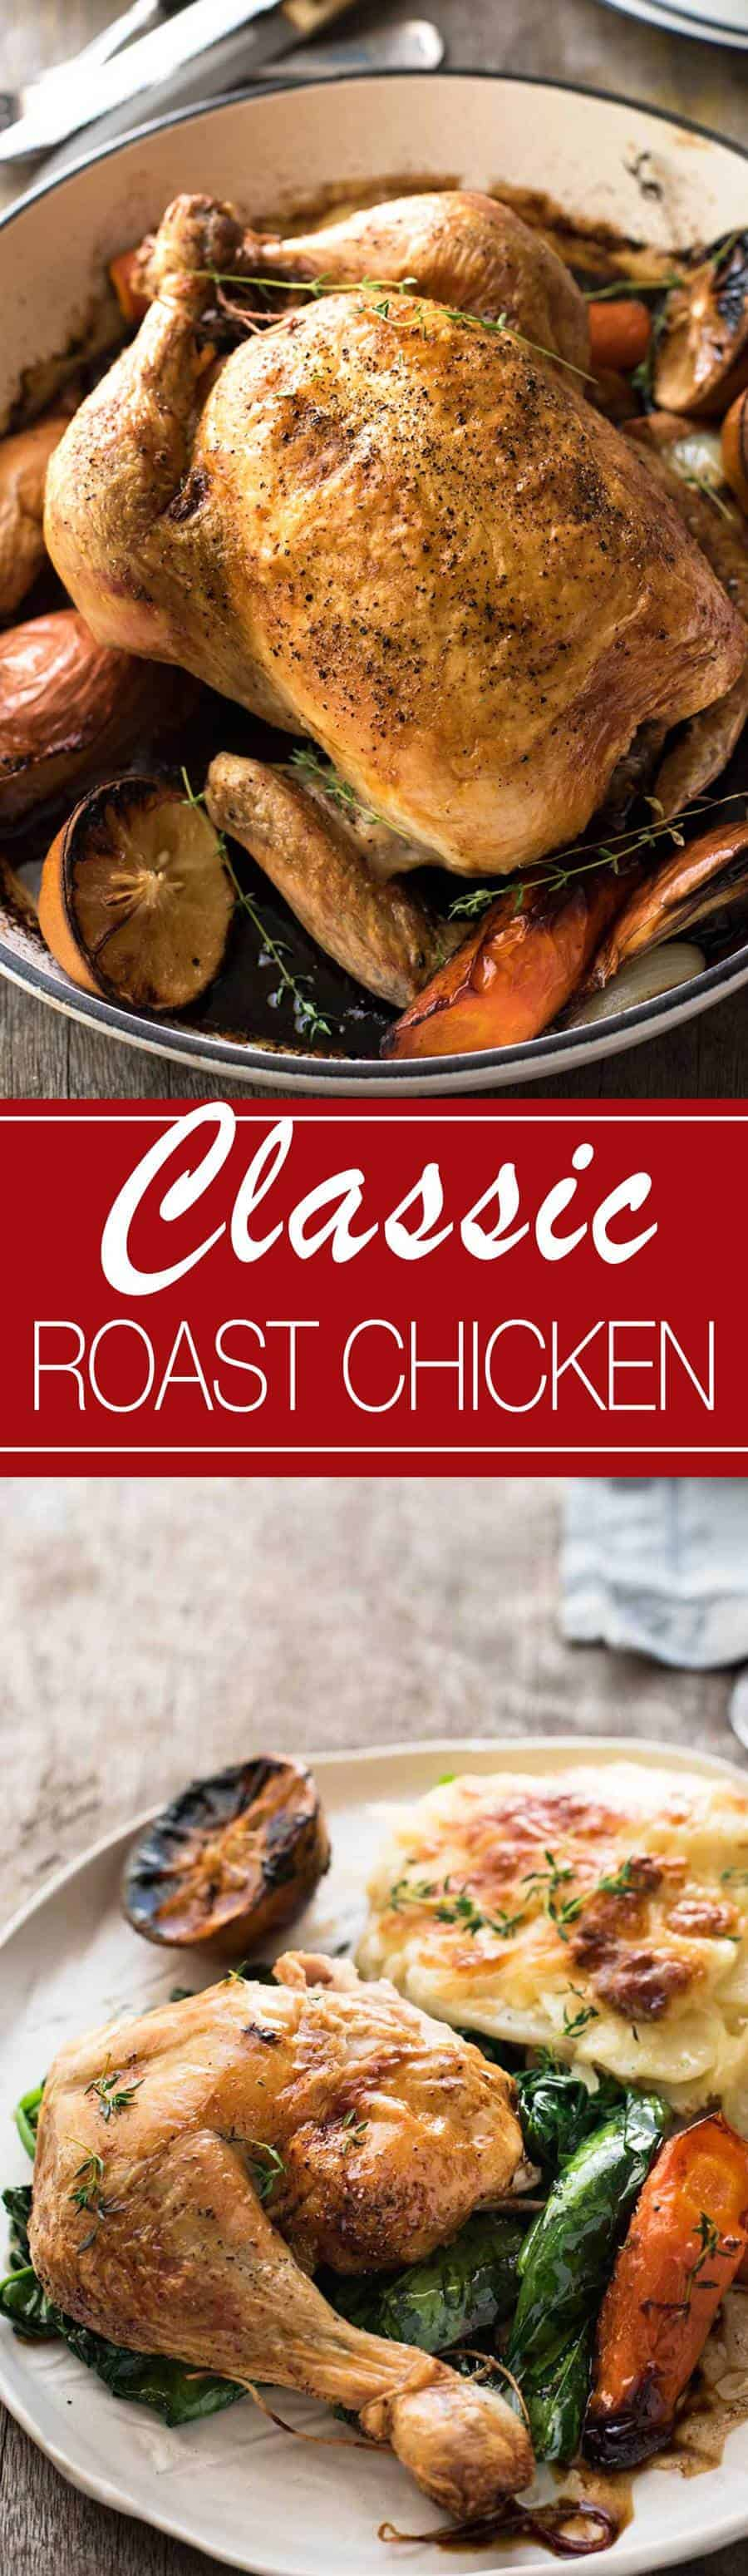 Classic Roast Chicken | The roasting times for different chicken sizes is so useful!!!